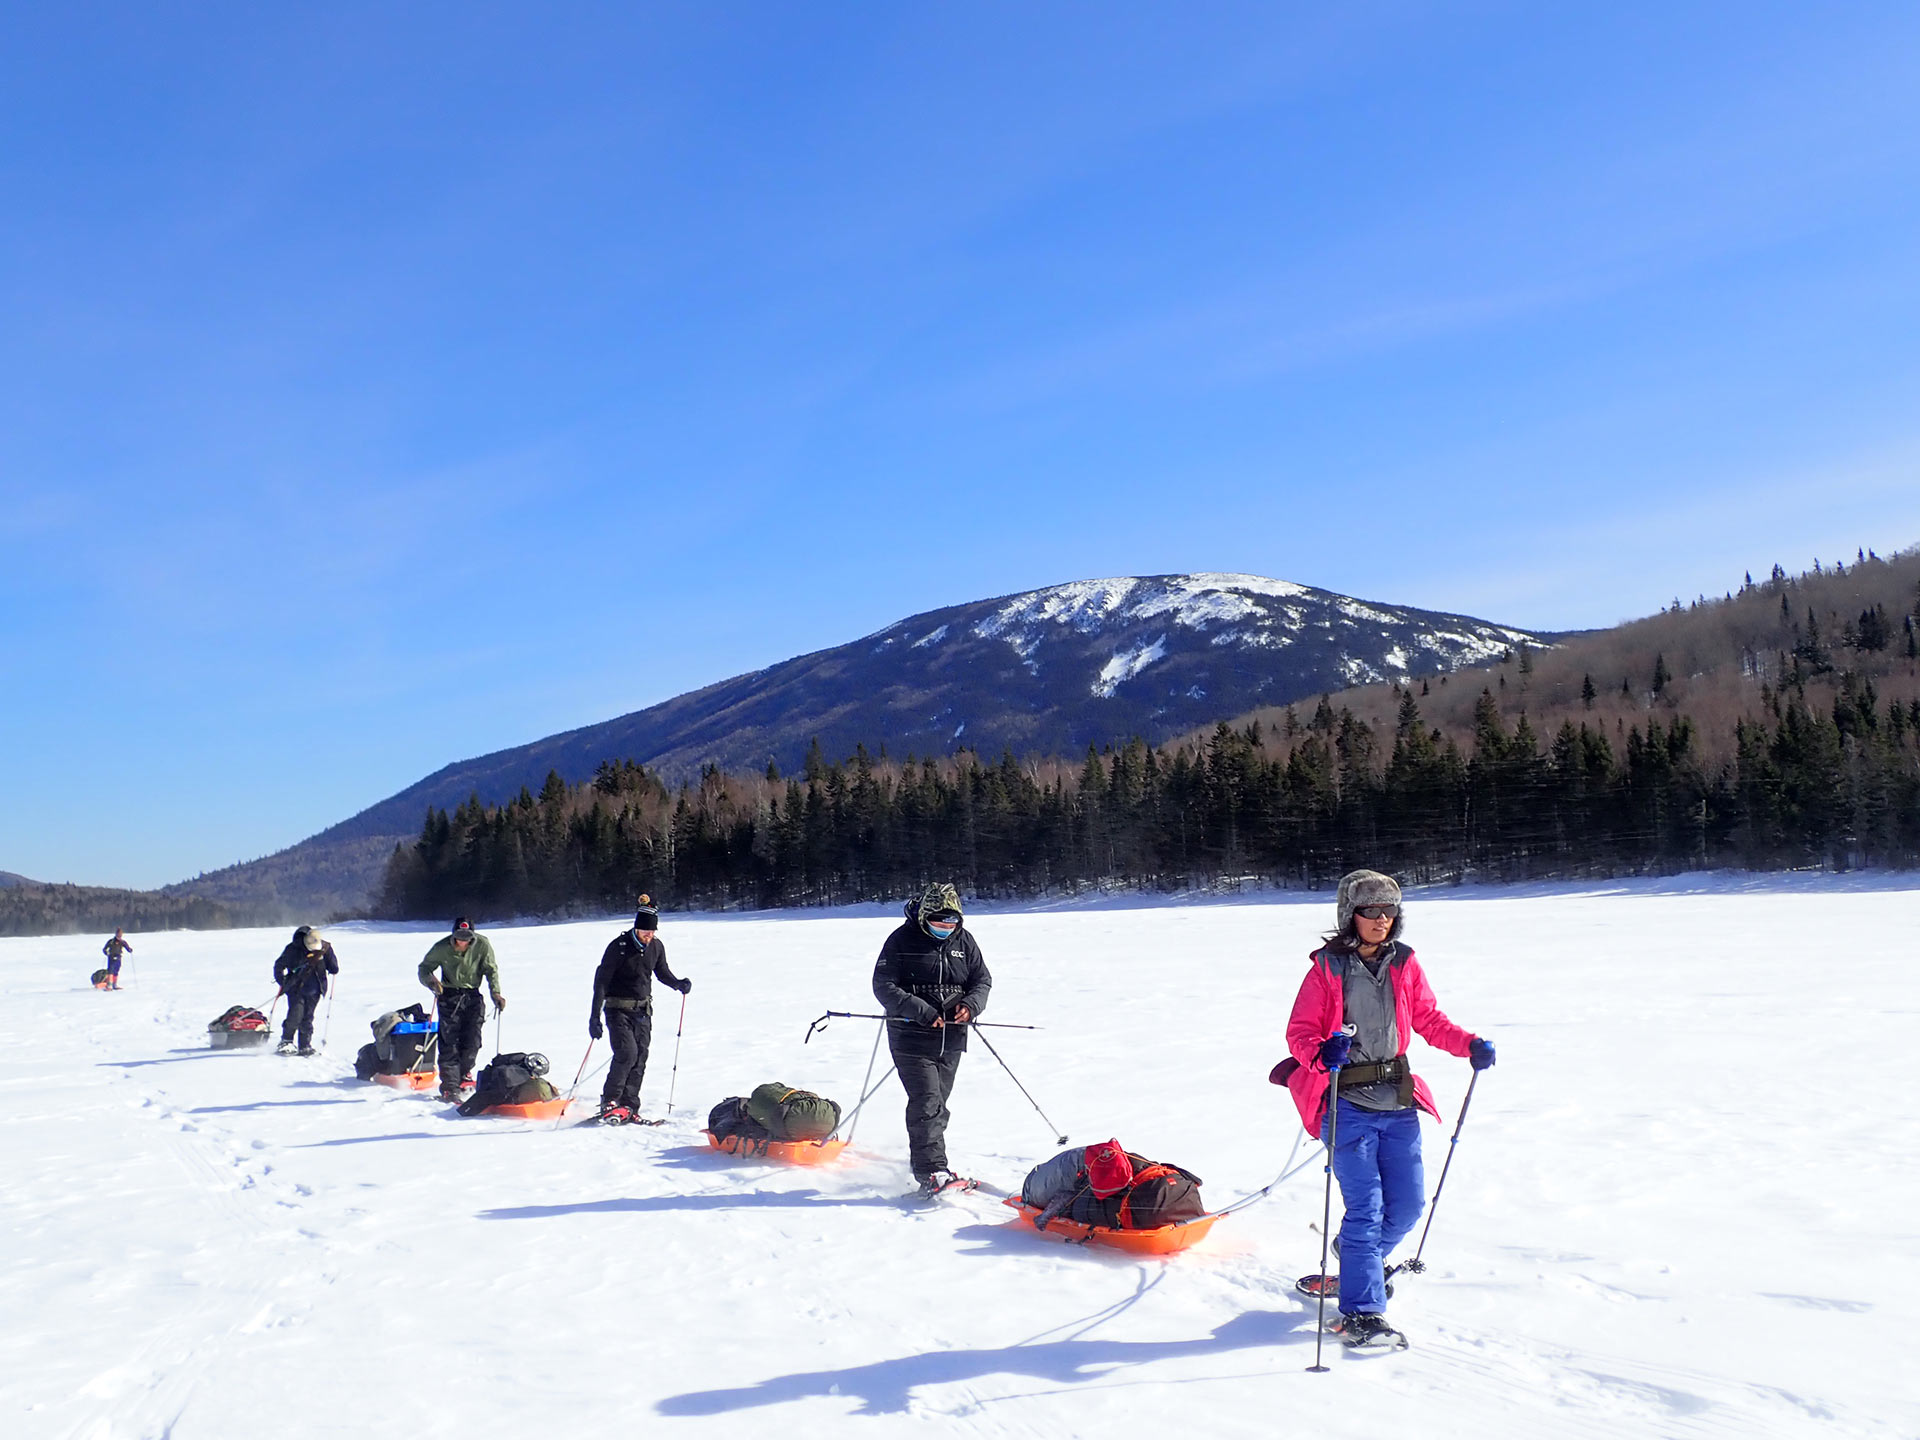 Crossing Nictau Lake with pulks. Photo by Andrew Stokes-Rees.